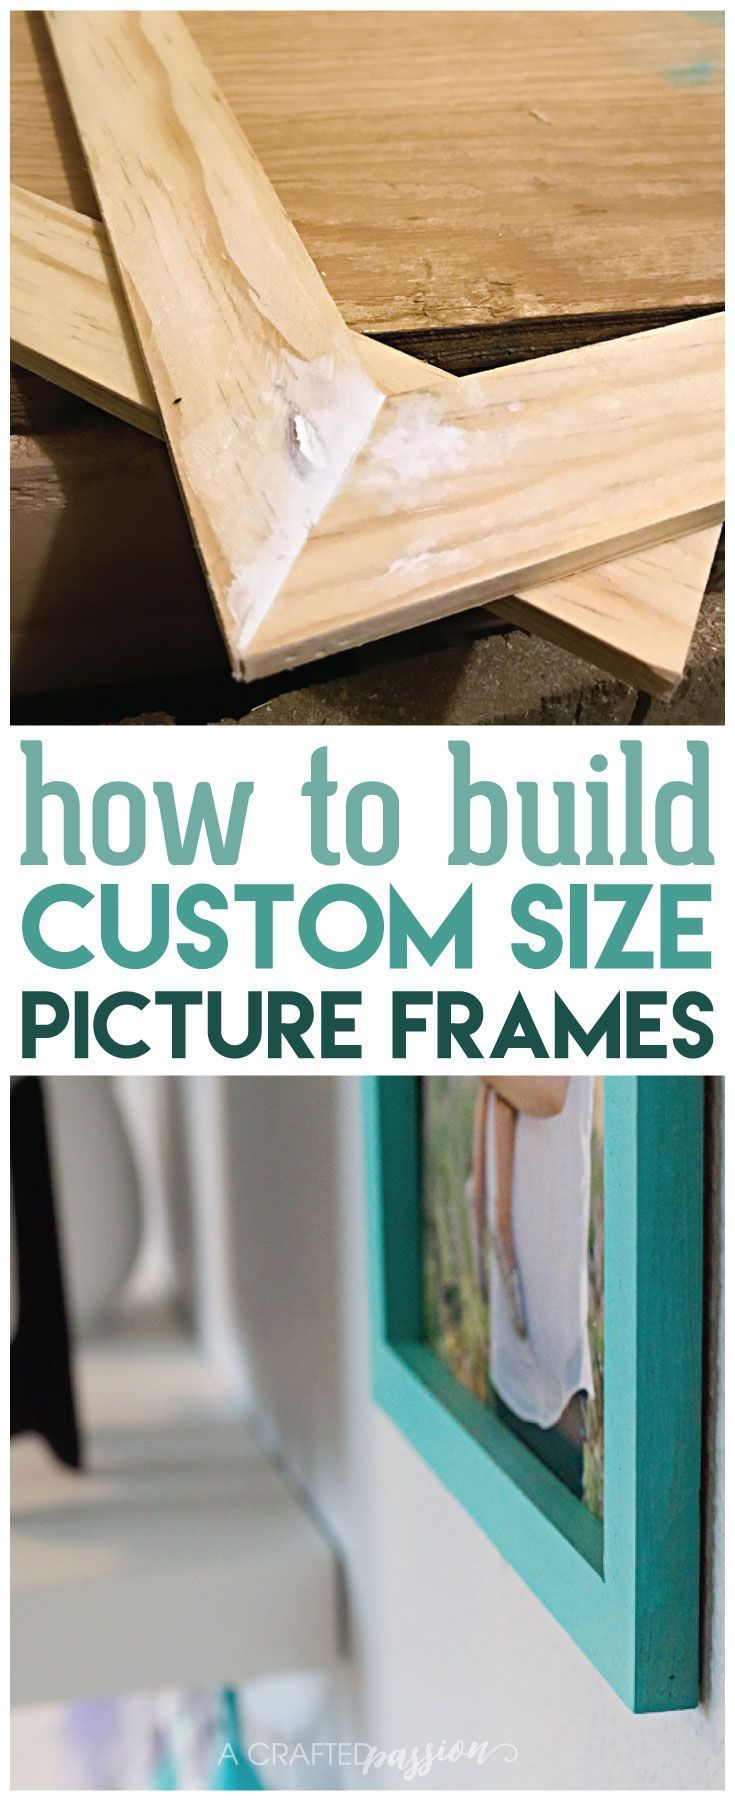 How to build an easy custom size picture frame tutorials how to build an easy custom size picture frame jeuxipadfo Image collections